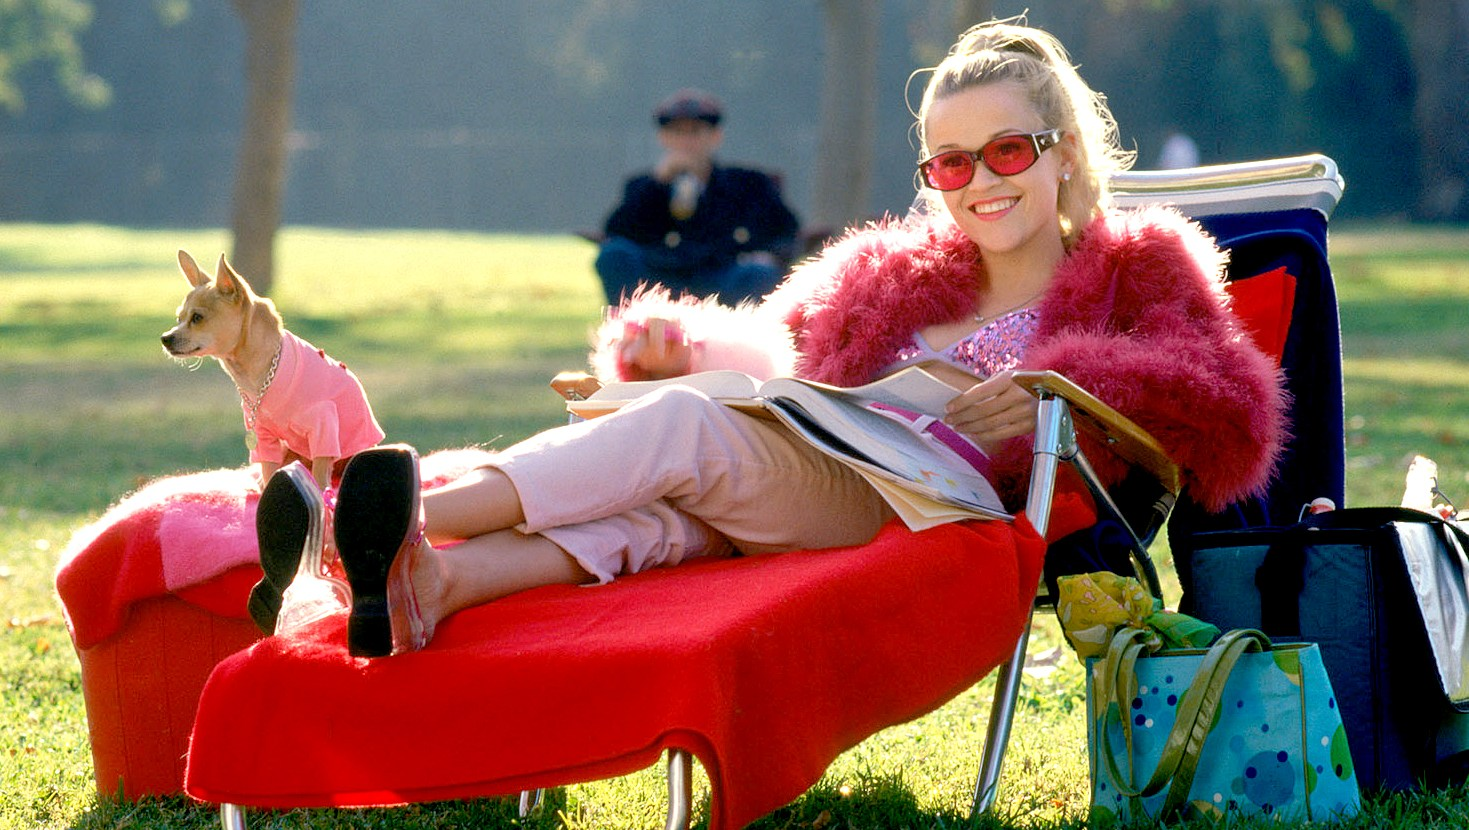 Celebrate Reese Witherspoon's Birthday By Revisiting Her Best Movies